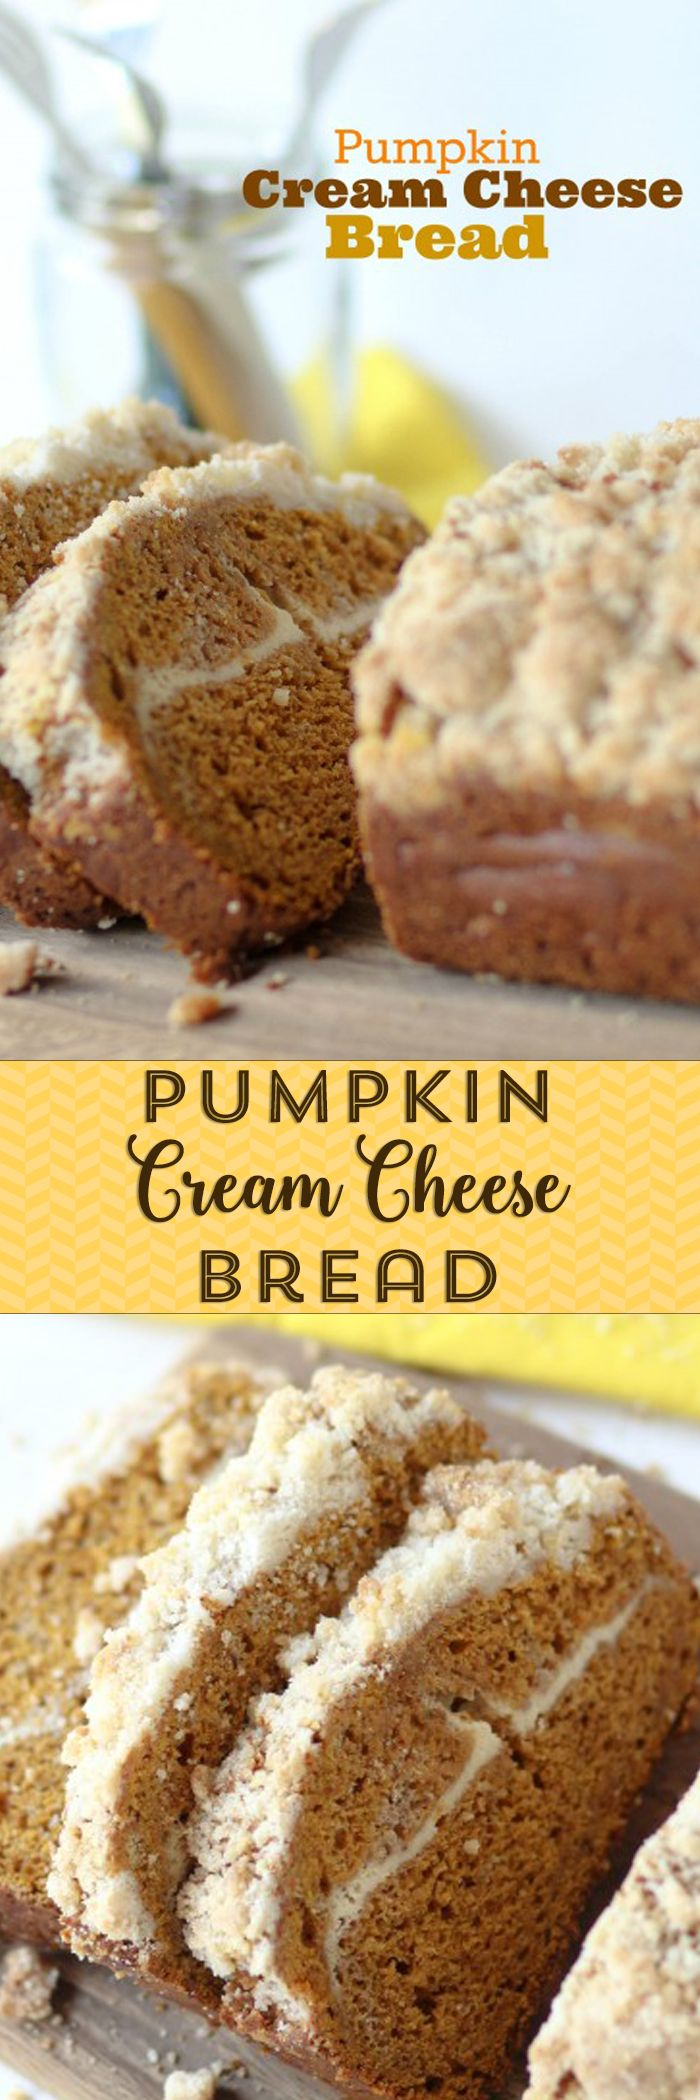 Pumpkin Cream Cheese Bread with streusel topping. Love this with a cup of tea on a Fall morning!